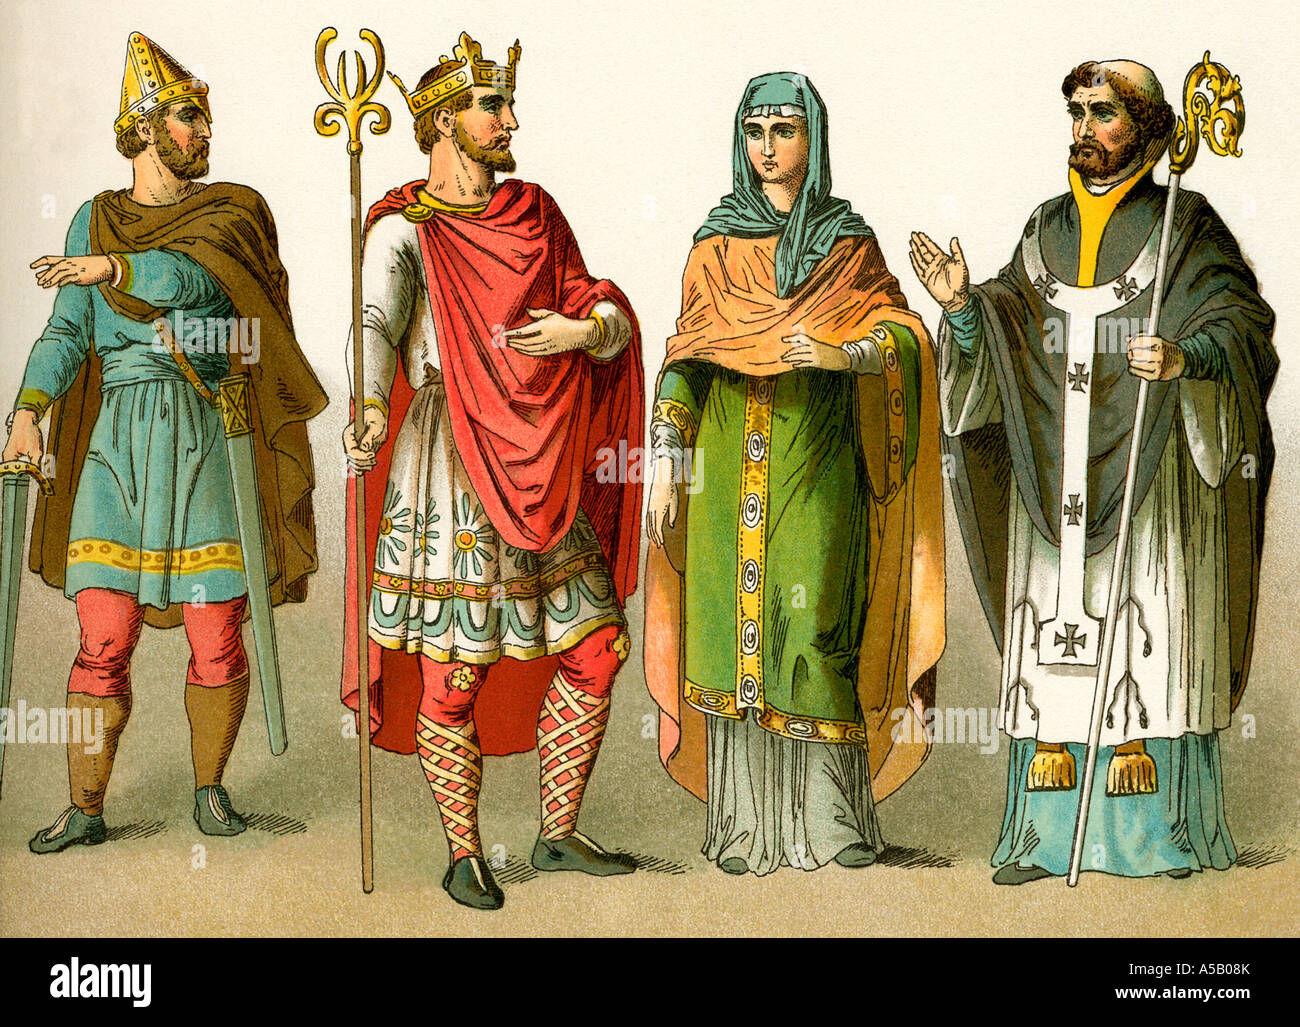 the anglo saxons The anglo-saxons were a very interesting population who inhabited britain in the fifth century in this video we shall examine their culture, language, cerim.